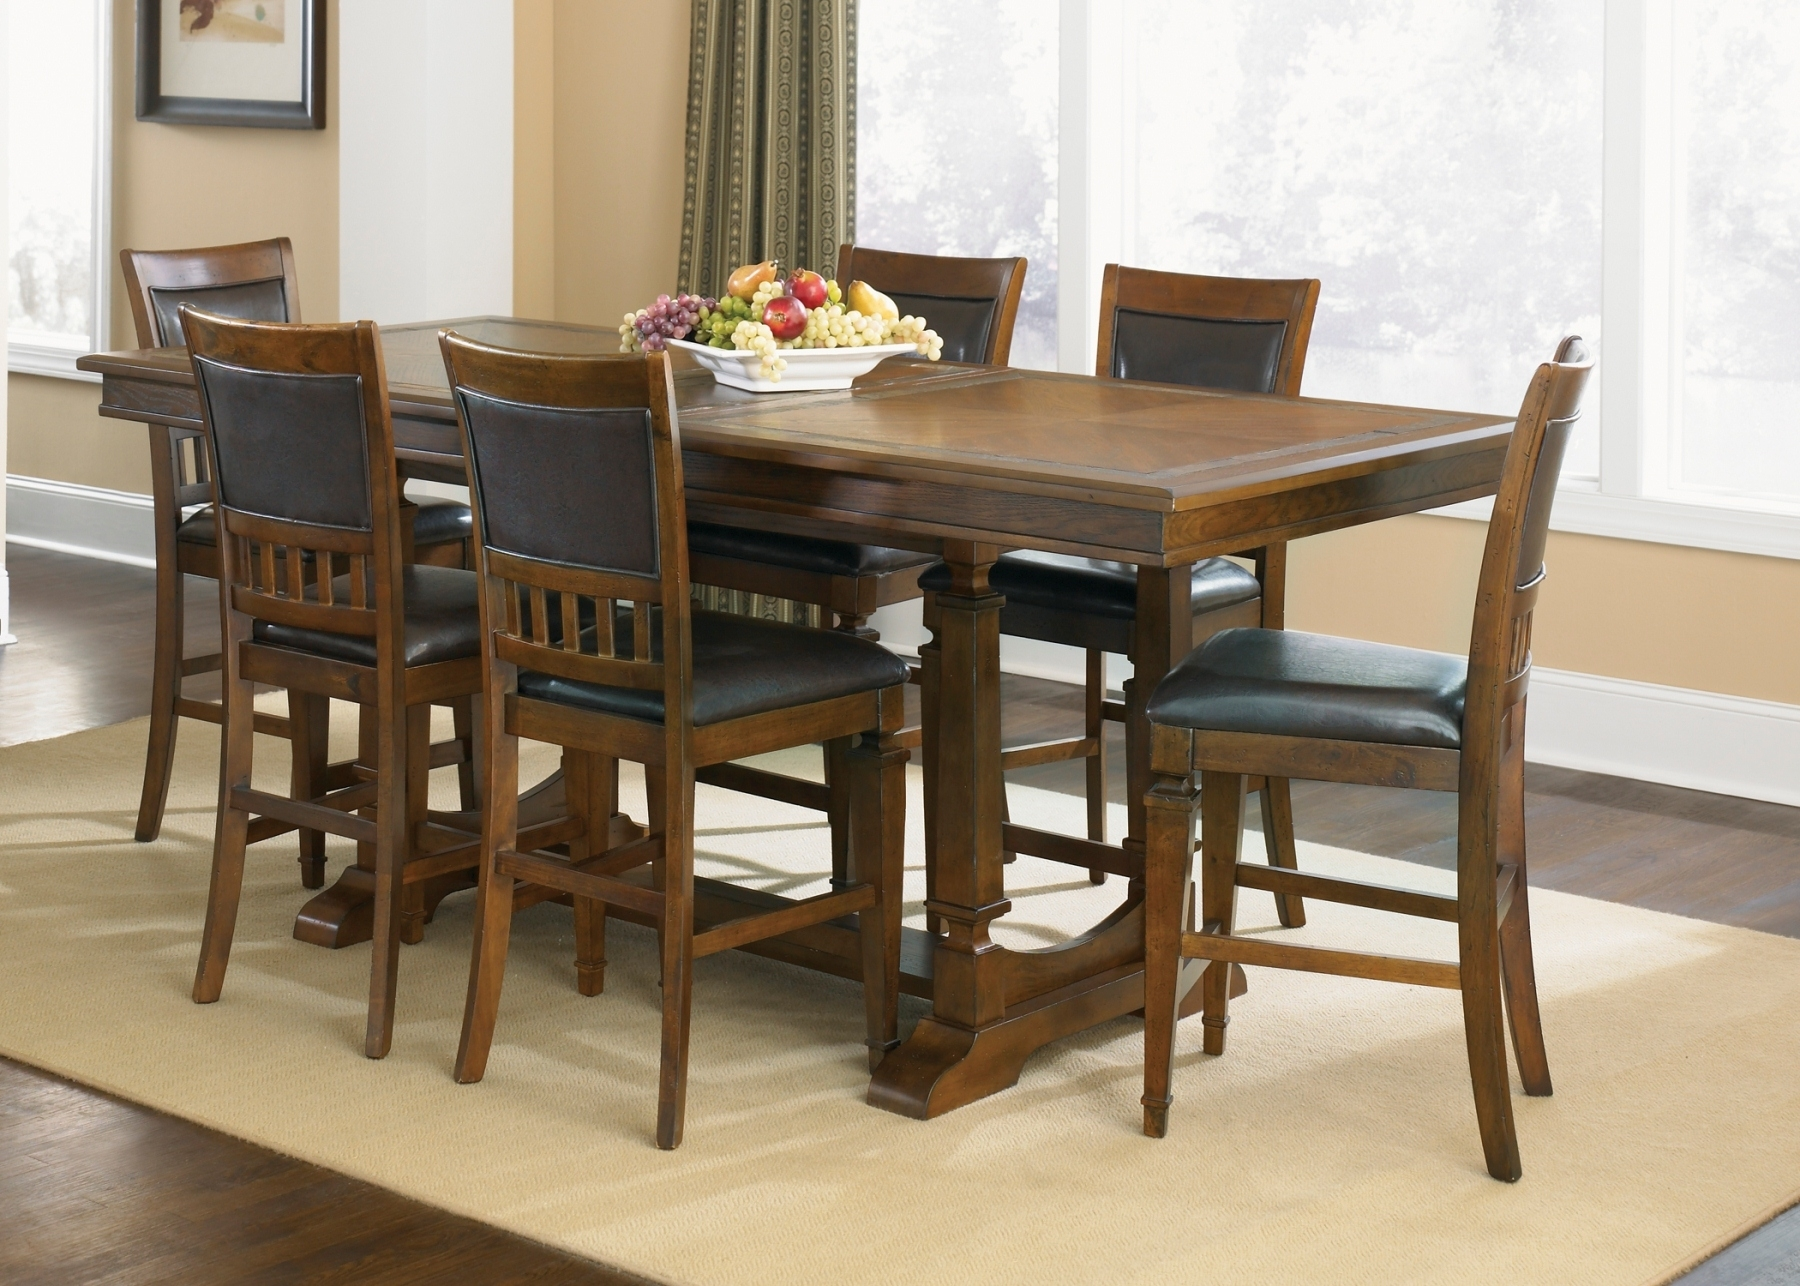 Narrow Dining Table Fresh Narrow Formal Dining Room Table Tasty With Regard To Sofa Table With Chairs (Image 7 of 15)